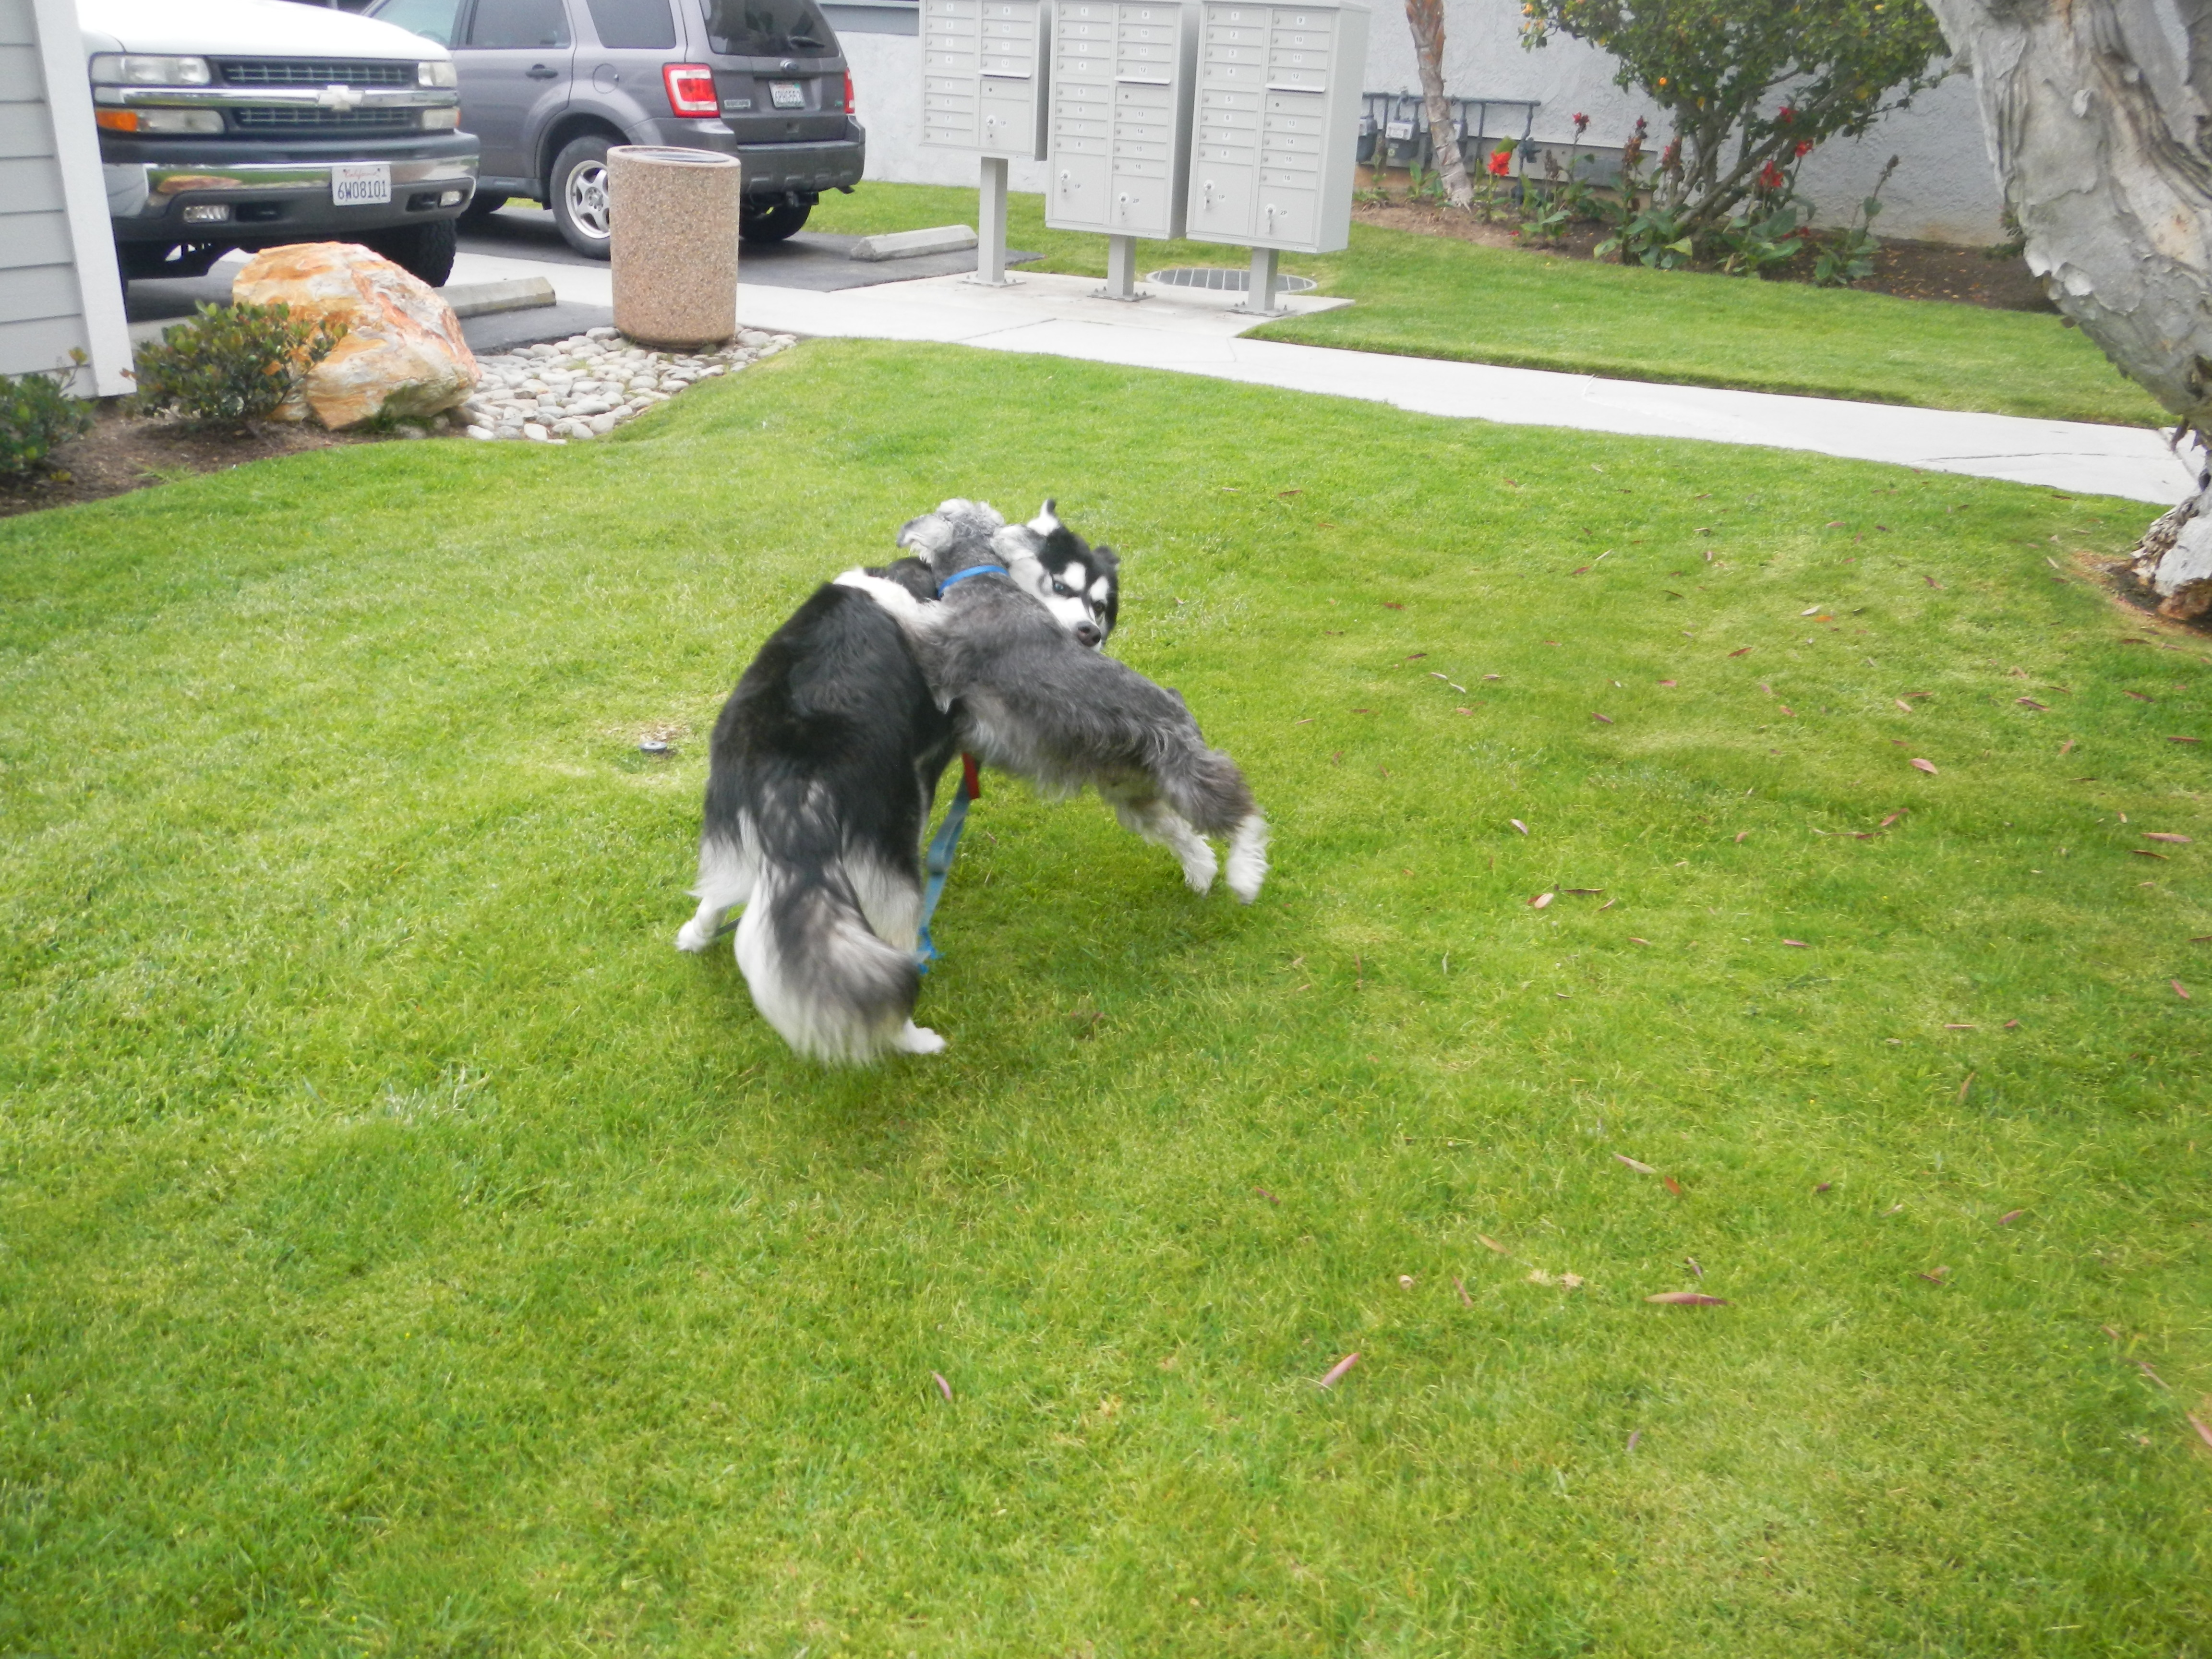 Kay will want to wrestle or run with your dog. He will even let your dog be on top occassionally